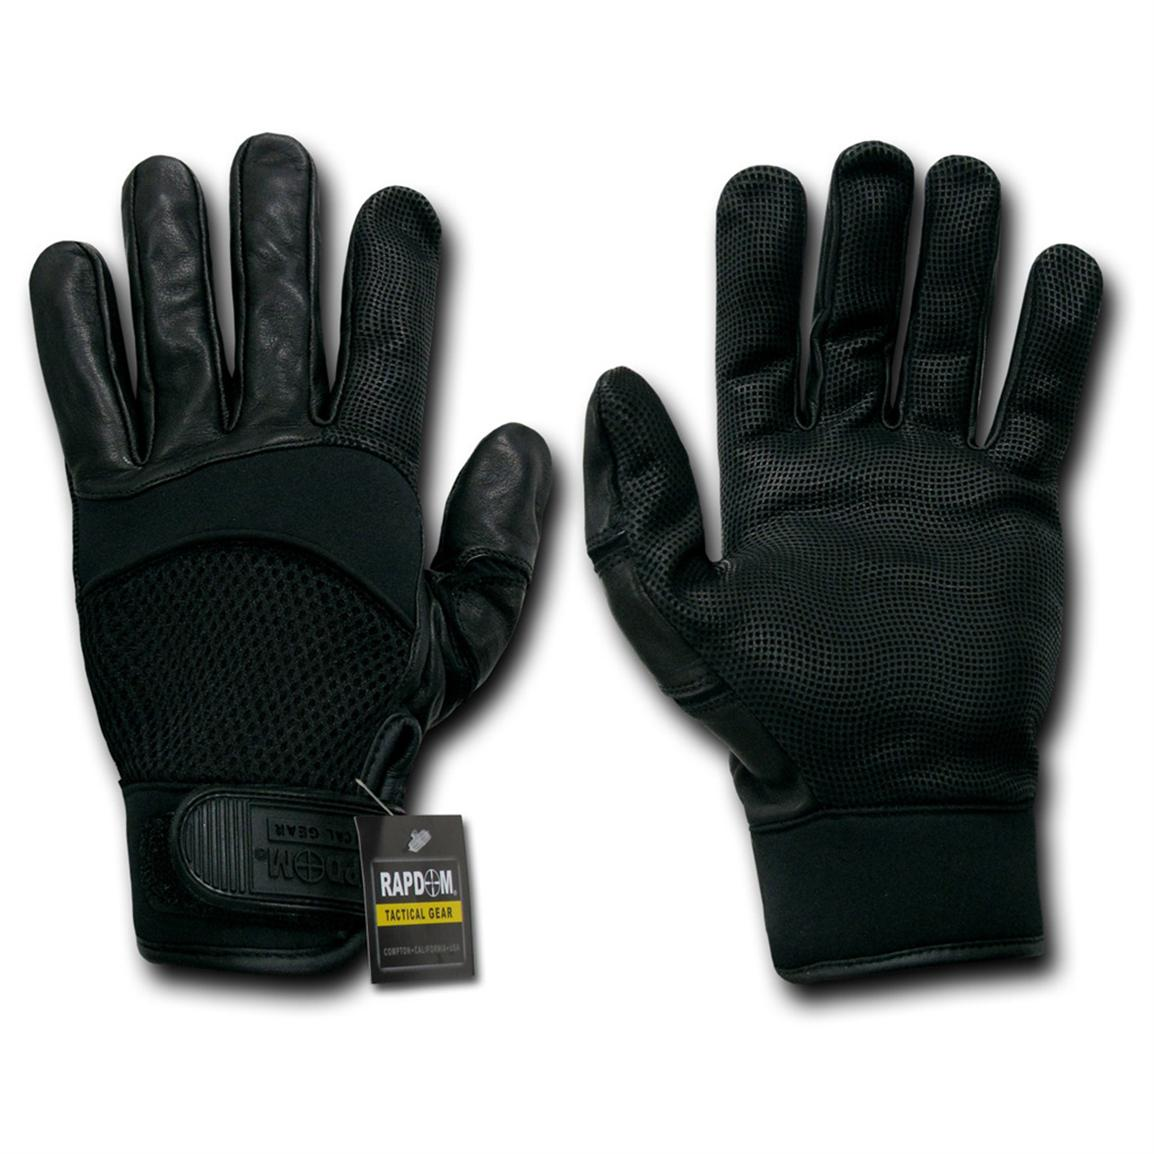 Palm area includes digital leather for enhanced grip and feel